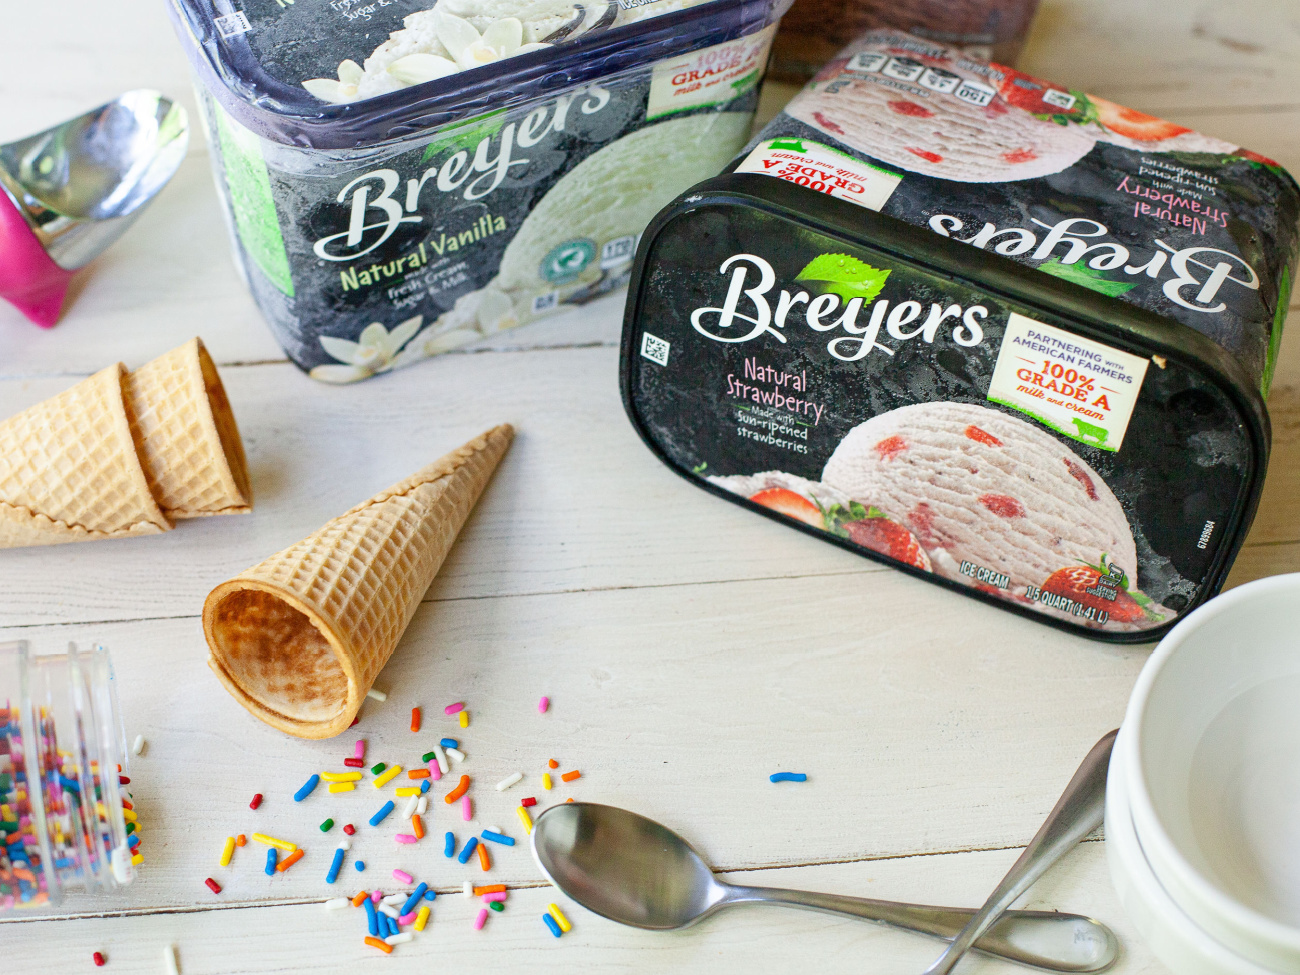 Chill Out On A Hot Day With Delicious Breyers Ice Cream - Save NOW At Publix on I Heart Publix 1